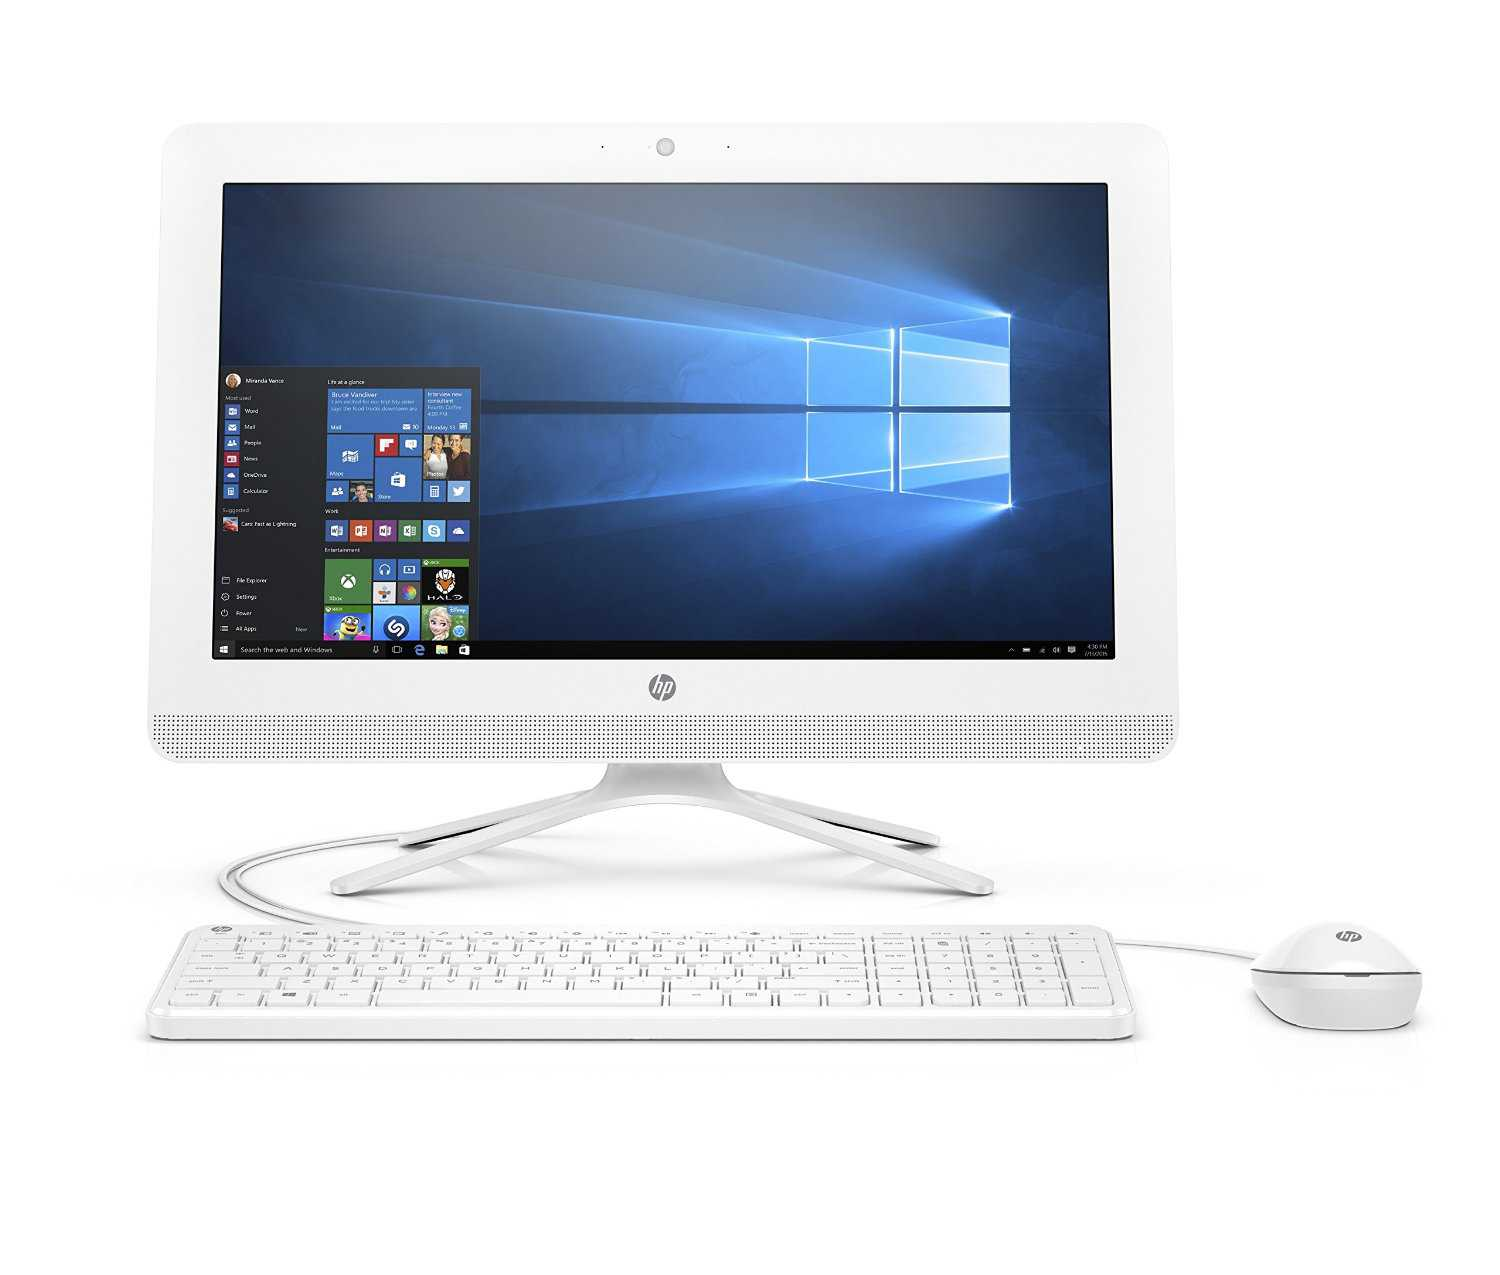 Refurbished - HP 22-B016 21.5' AIO Desktop Intel Pentium J3710 1.6GHz 4GB 1TB WiFi BT Win10